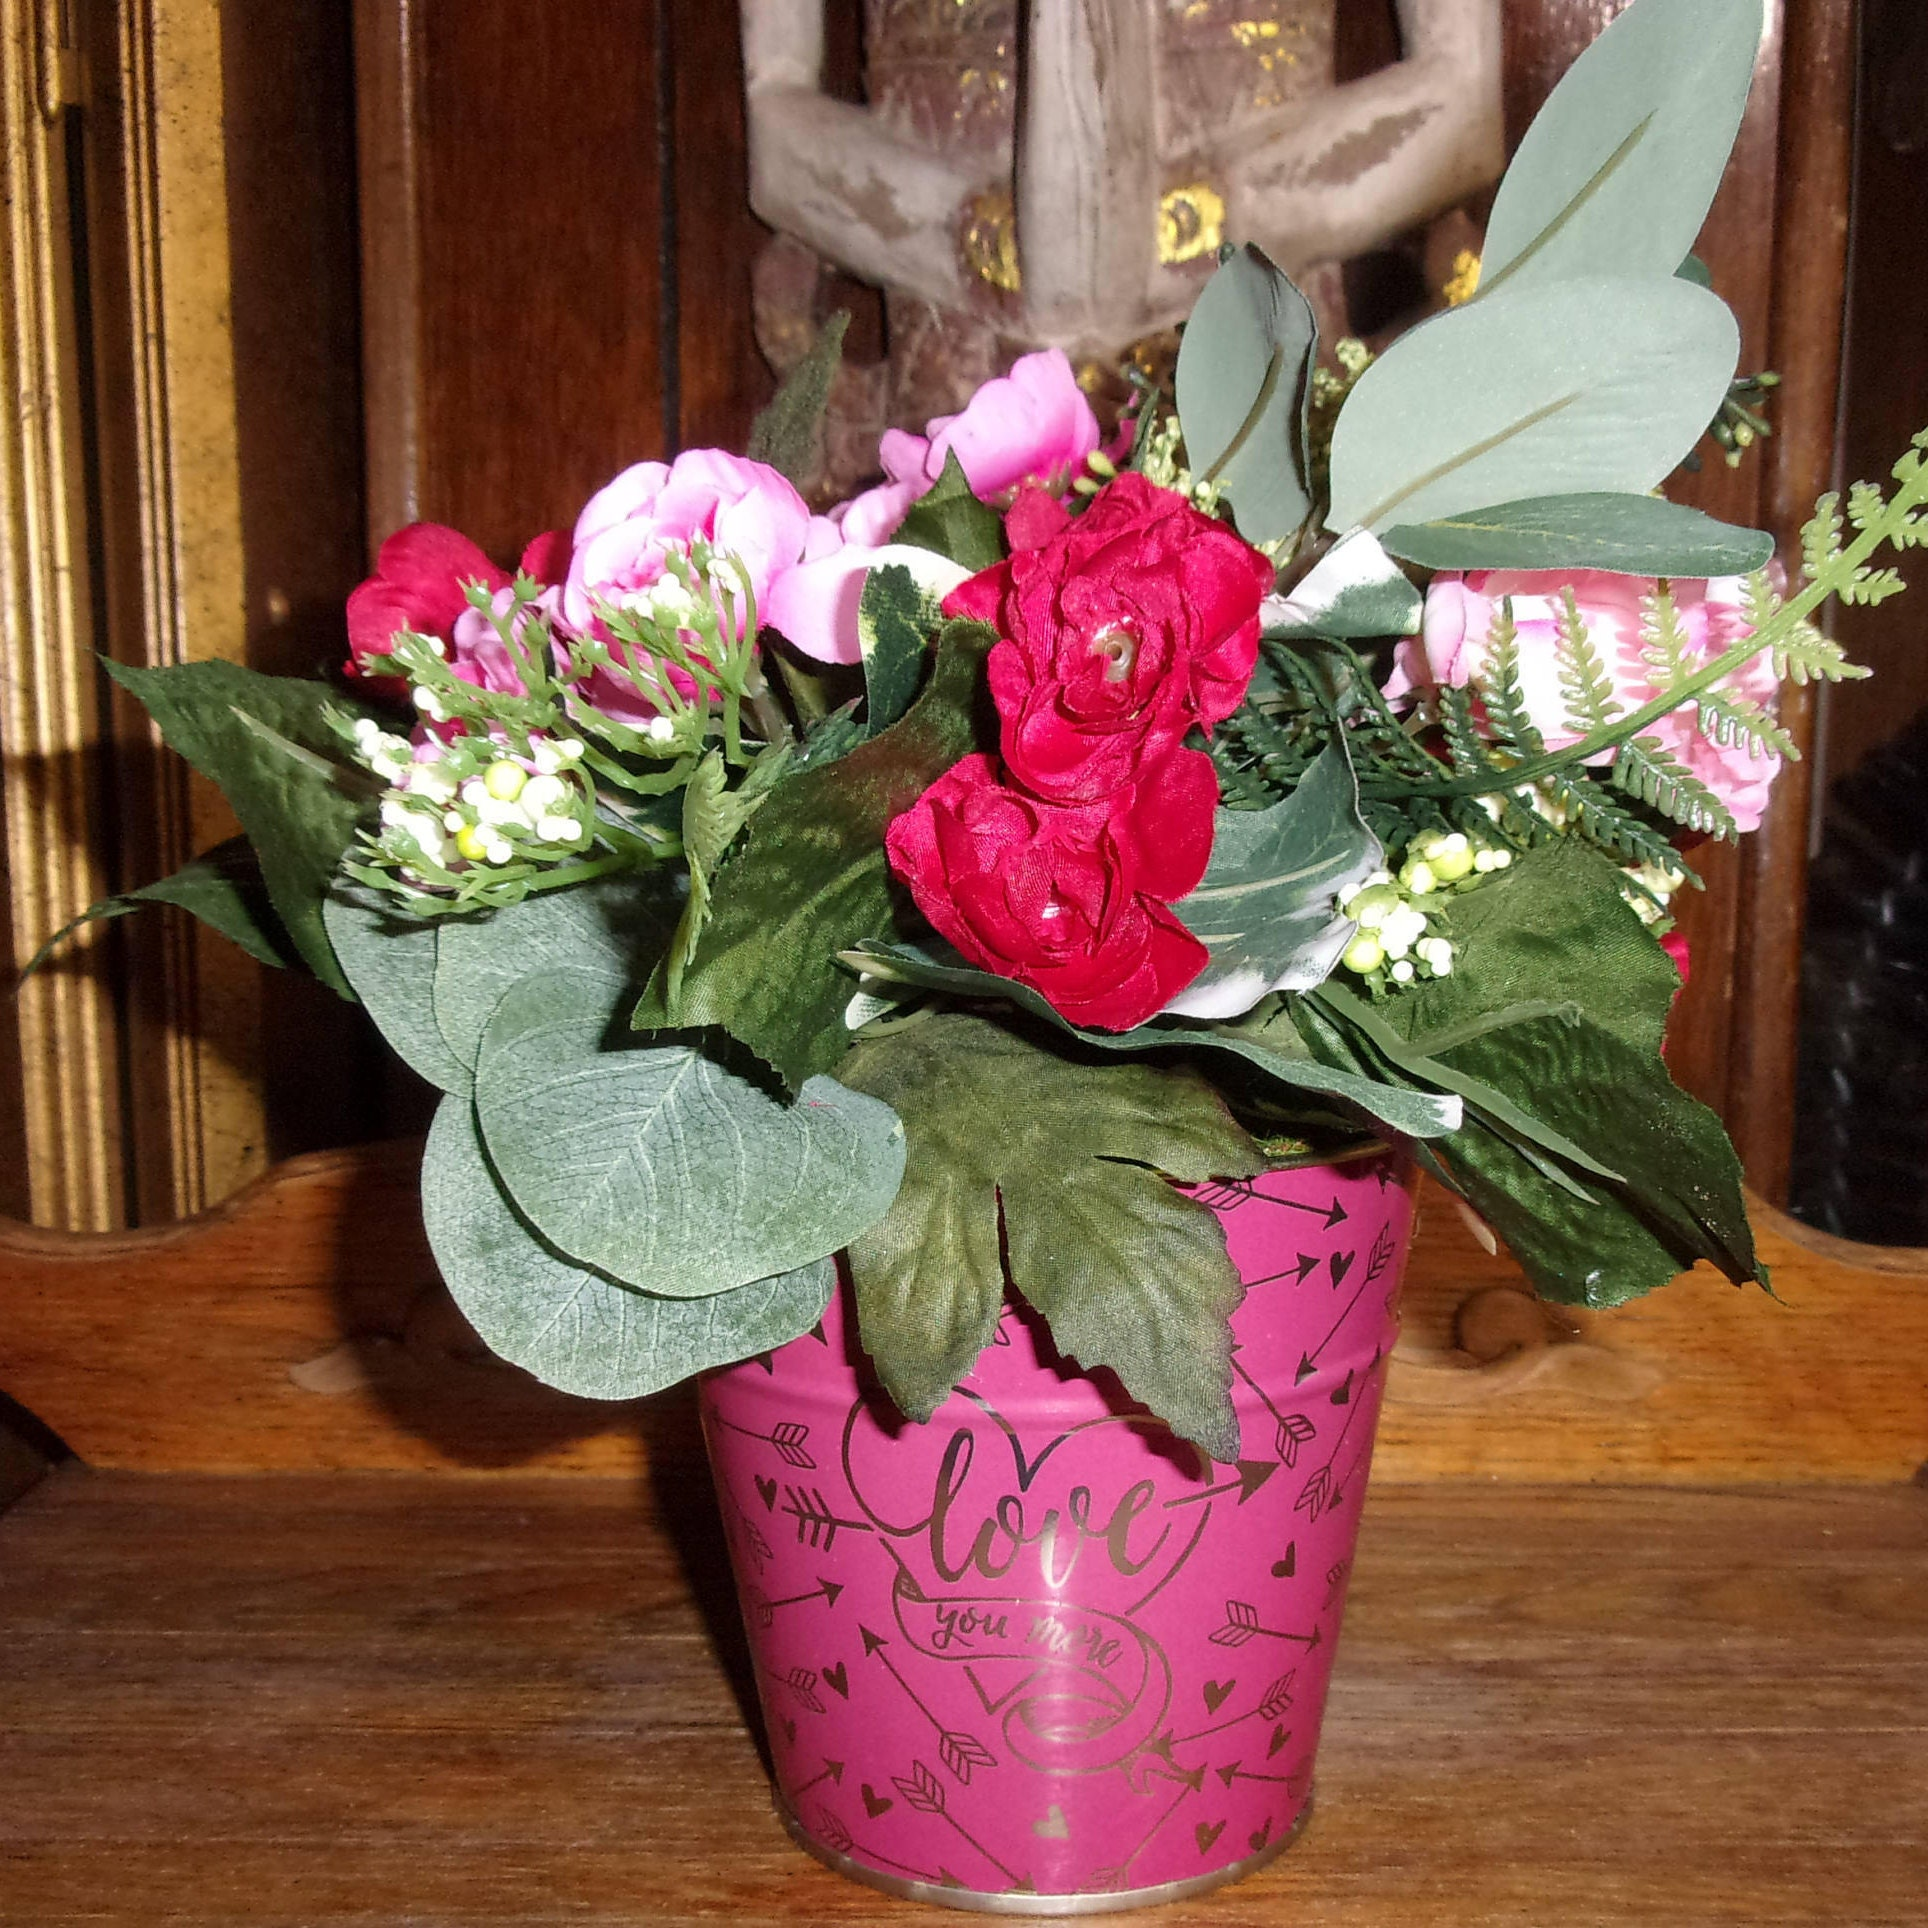 Valentine bouquet tin valentine floral decoratio fabric birthday valentine bouquet tin valentine floral decoratio fabric birthday bouquet bucket of roses anniversary gift flower valentine gift izmirmasajfo